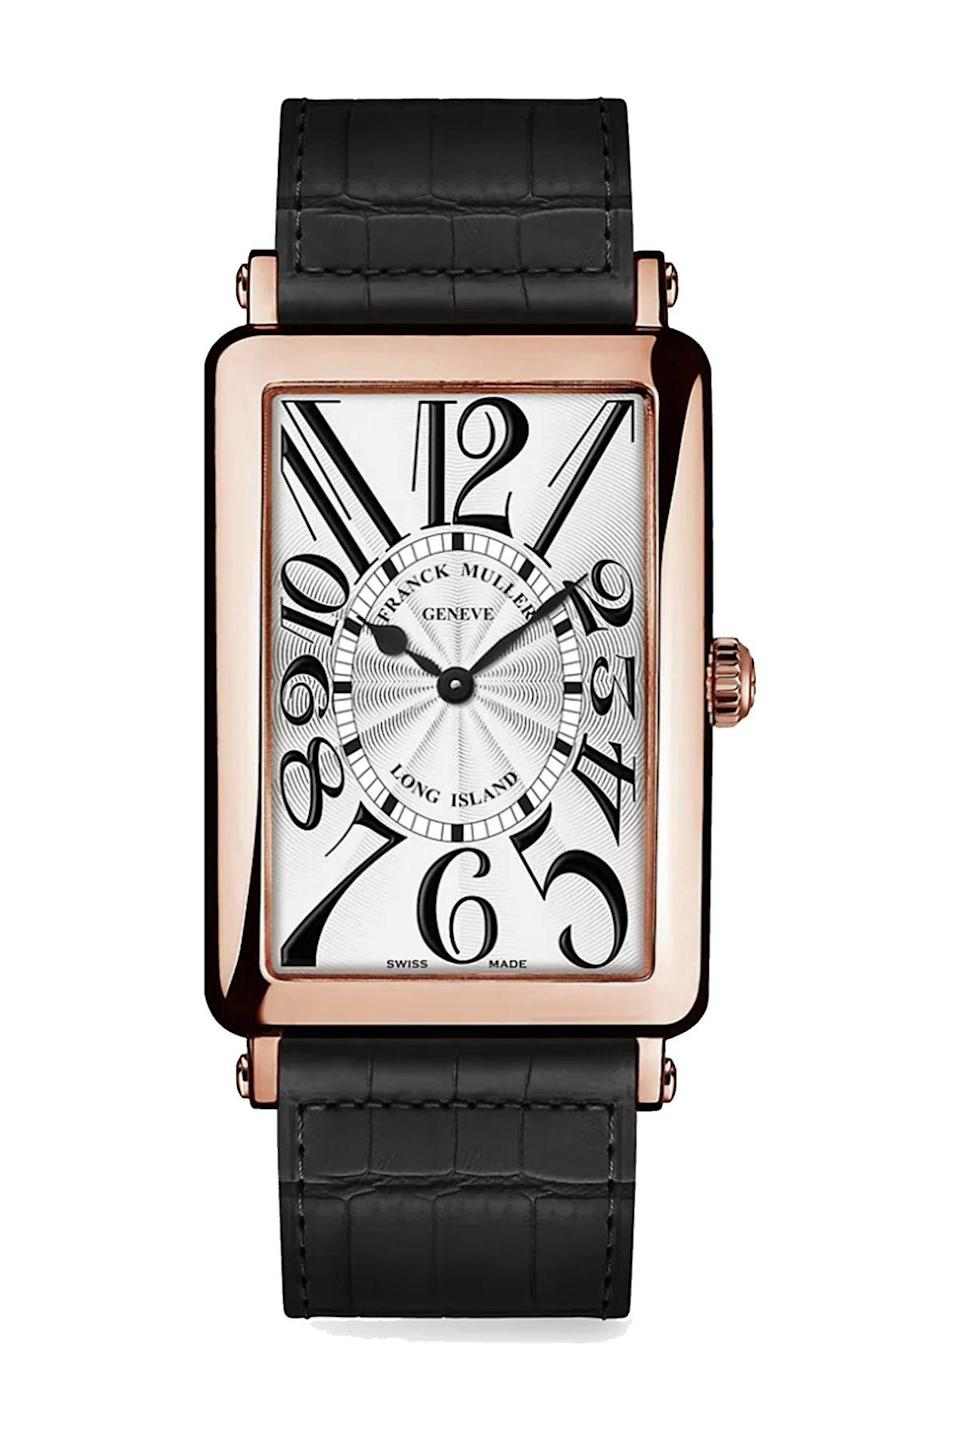 """<p><strong>Franck Muller</strong></p><p>saksfifthavenue.com</p><p><strong>$12800.00</strong></p><p><a href=""""https://go.redirectingat.com?id=74968X1596630&url=https%3A%2F%2Fwww.saksfifthavenue.com%2Fproduct%2Ffranck-muller-long-island-rose-gold--amp--alligator-strap-watch-0400099449032.html%3Fdwvar_0400099449032_color%3DBLACK&sref=https%3A%2F%2Fwww.townandcountrymag.com%2Fstyle%2Fjewelry-and-watches%2Fg36186288%2Fbest-rose-gold-watches-women%2F"""" rel=""""nofollow noopener"""" target=""""_blank"""" data-ylk=""""slk:Shop Now"""" class=""""link rapid-noclick-resp"""">Shop Now</a></p><p>A classic watch shape with whimsical hour markers, for just a hint of fun.</p>"""